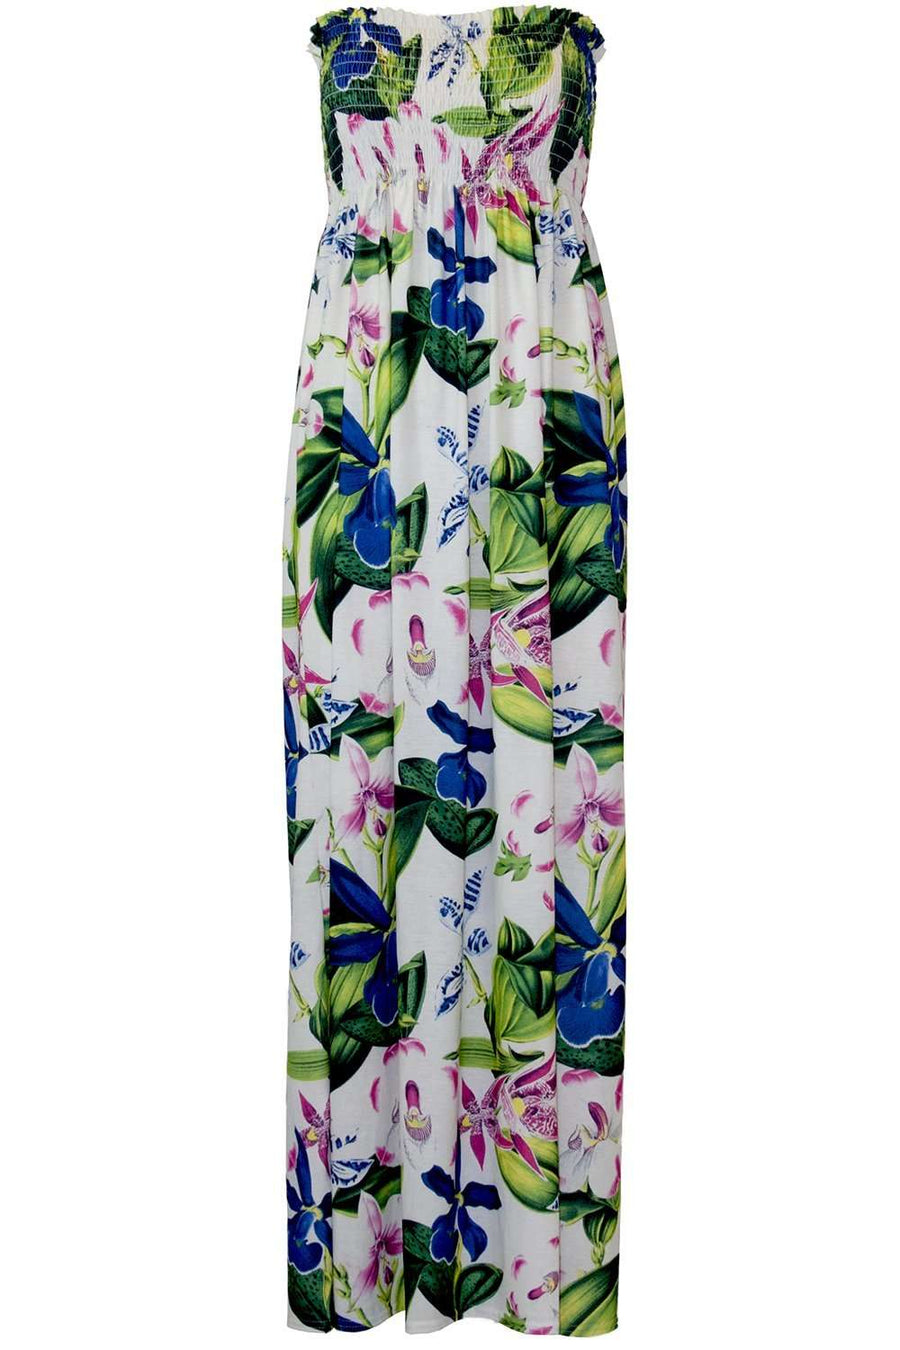 Cassadie Sheering Strapless Floral Maxi Dress - bejealous-com